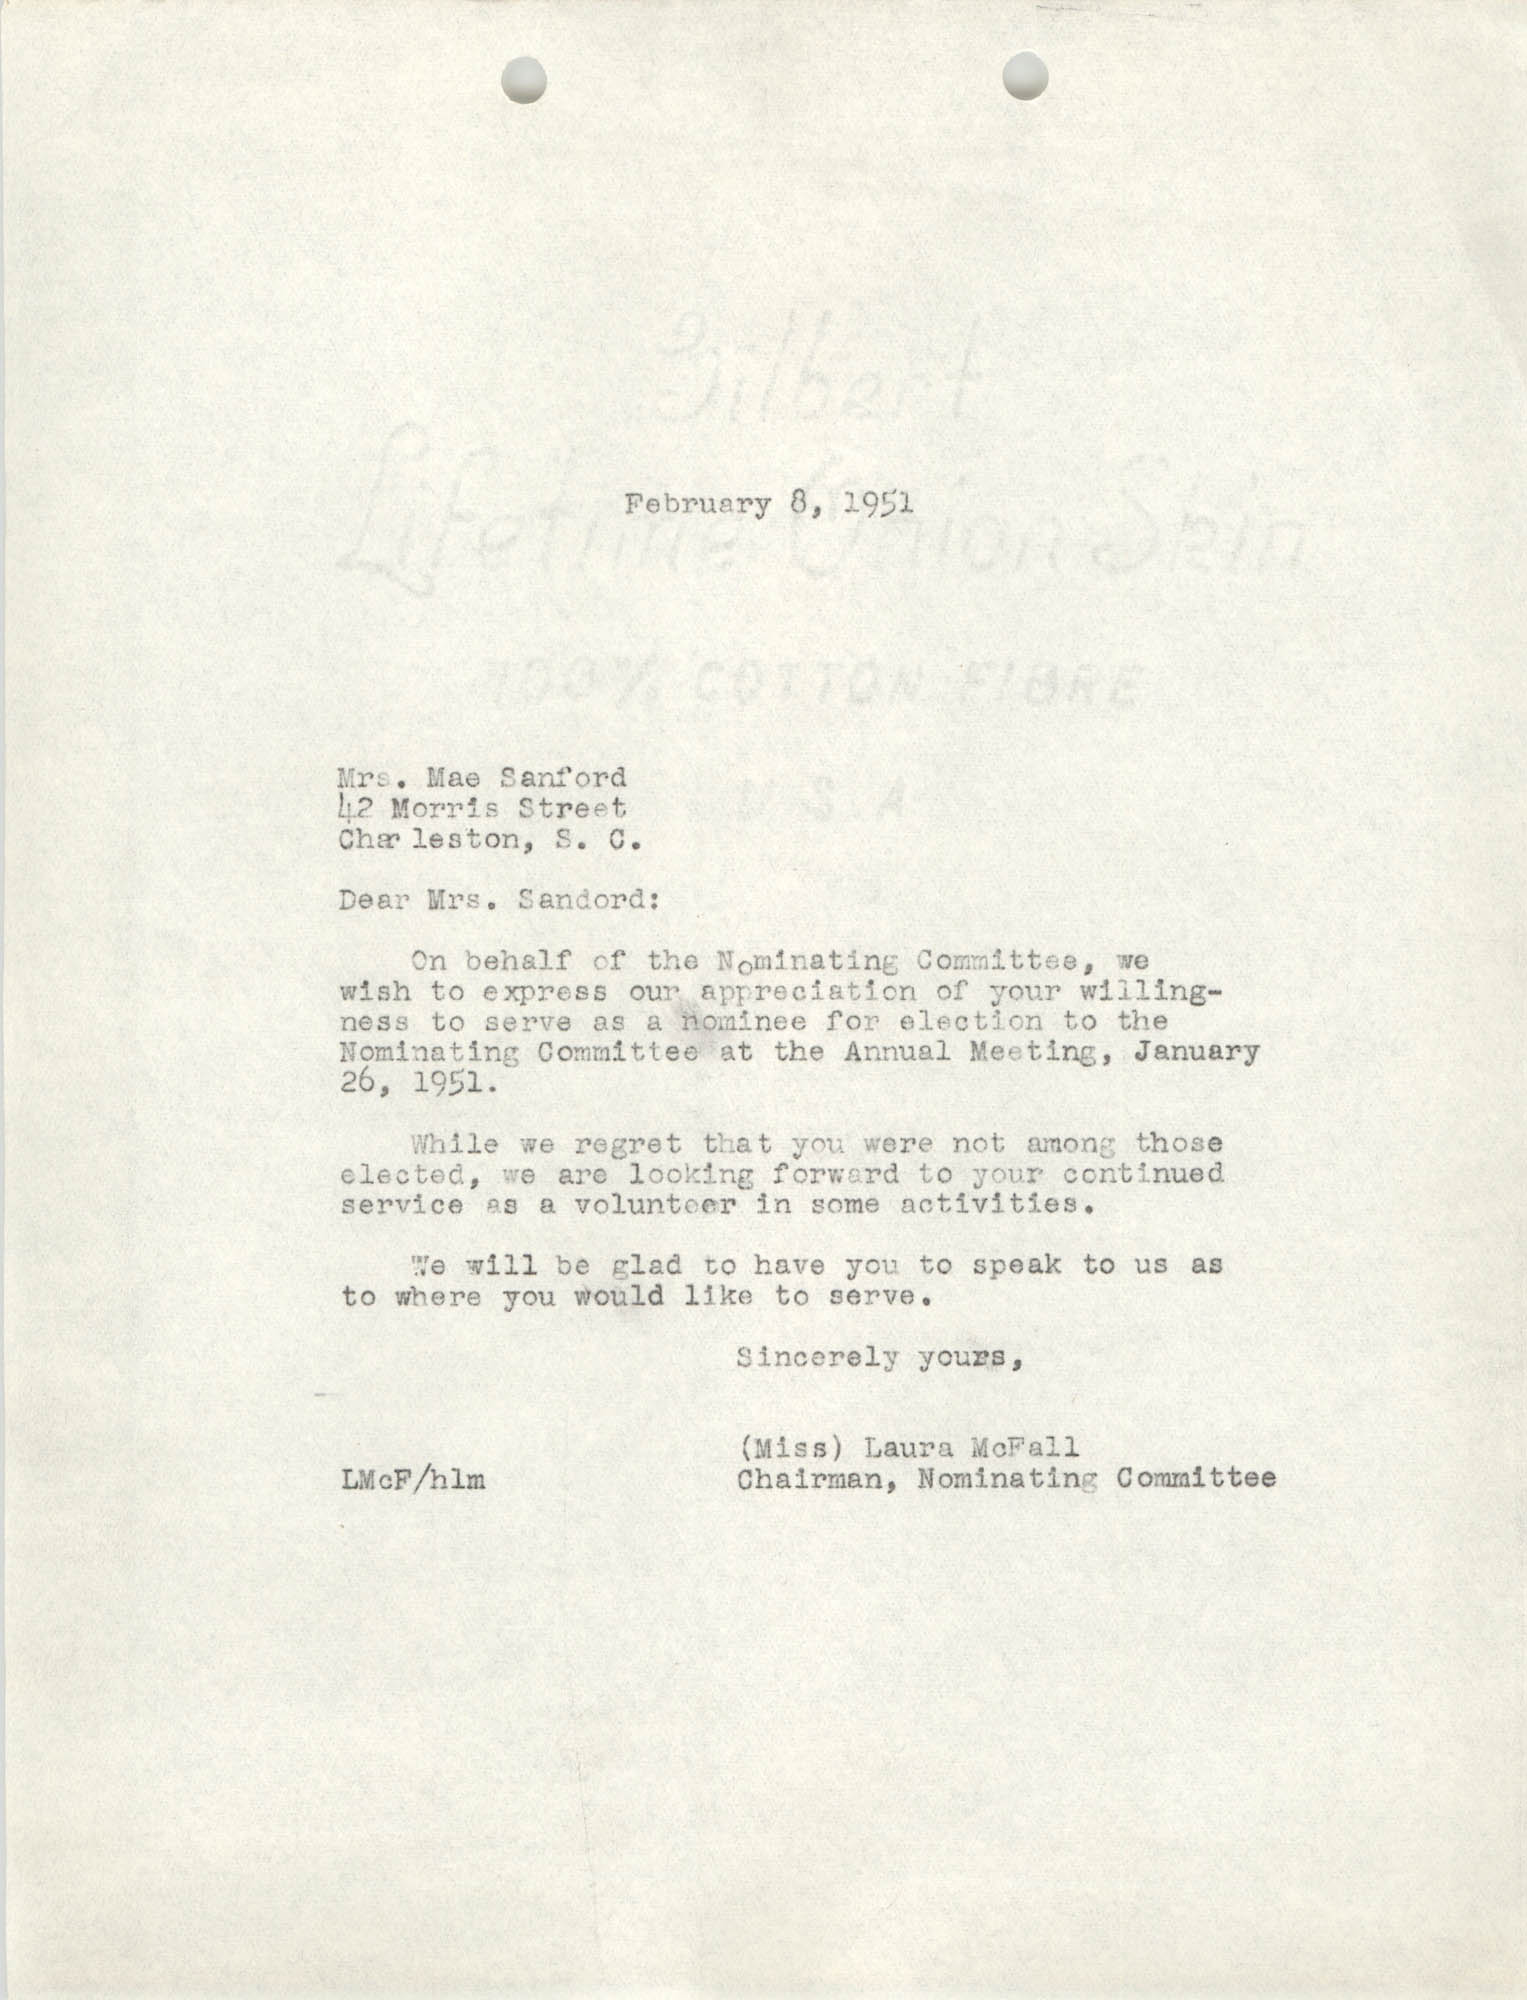 Letter from Laura McFall to Mae Sanford, February 8, 1951